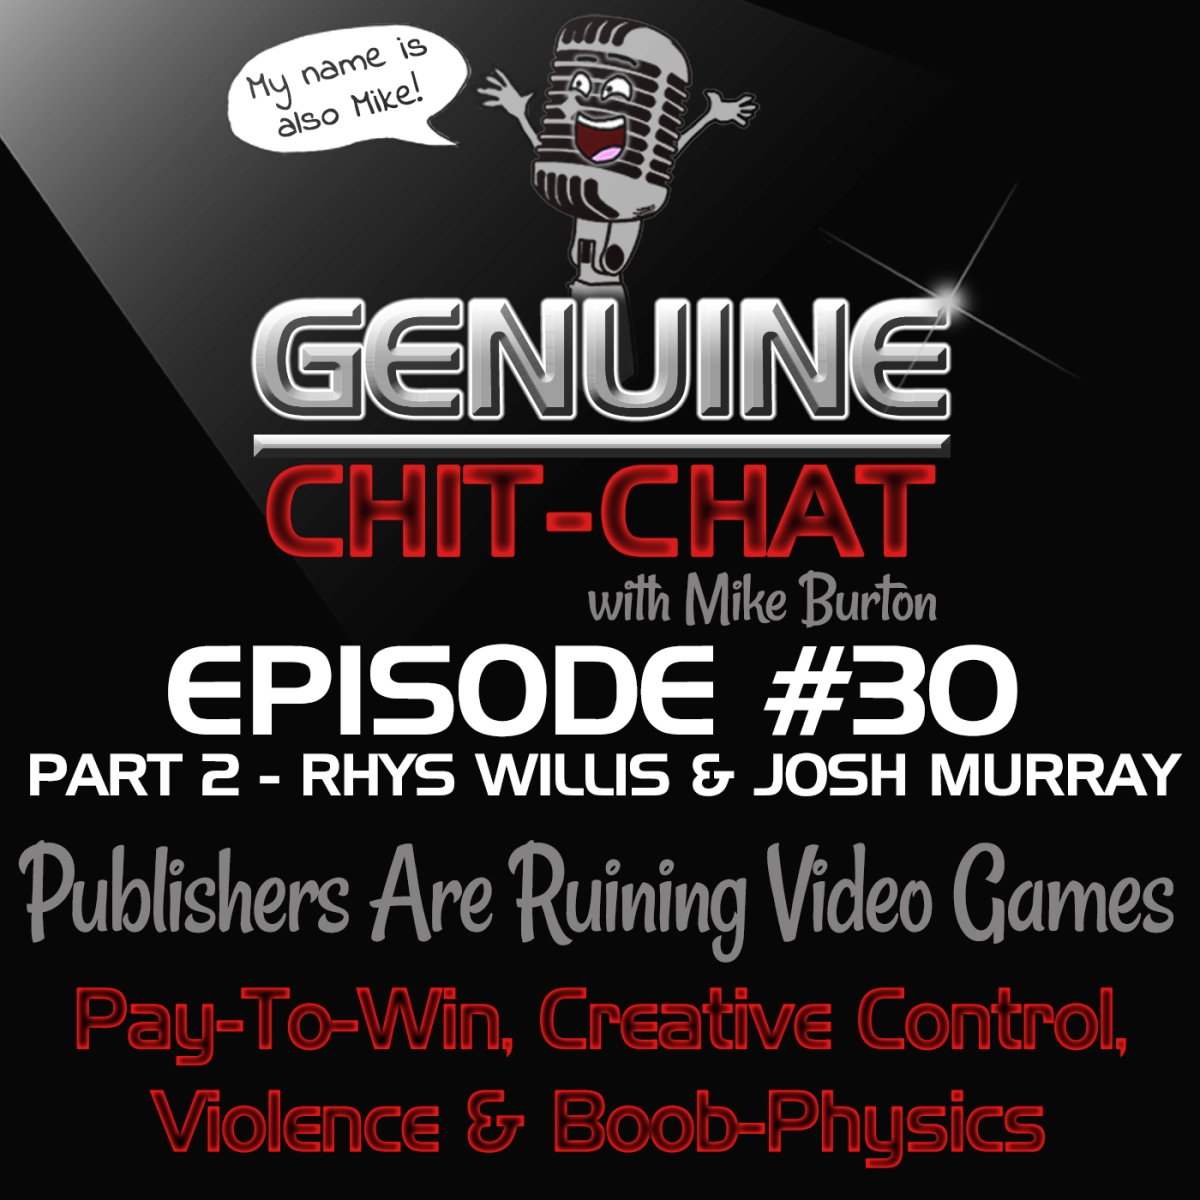 Publishers Are Ruining Video Games: Pay-To-Win, Creative Control, Violence & Boob-Physics – GCC #30 Part 2 with Rhys Willis & JoshMurray